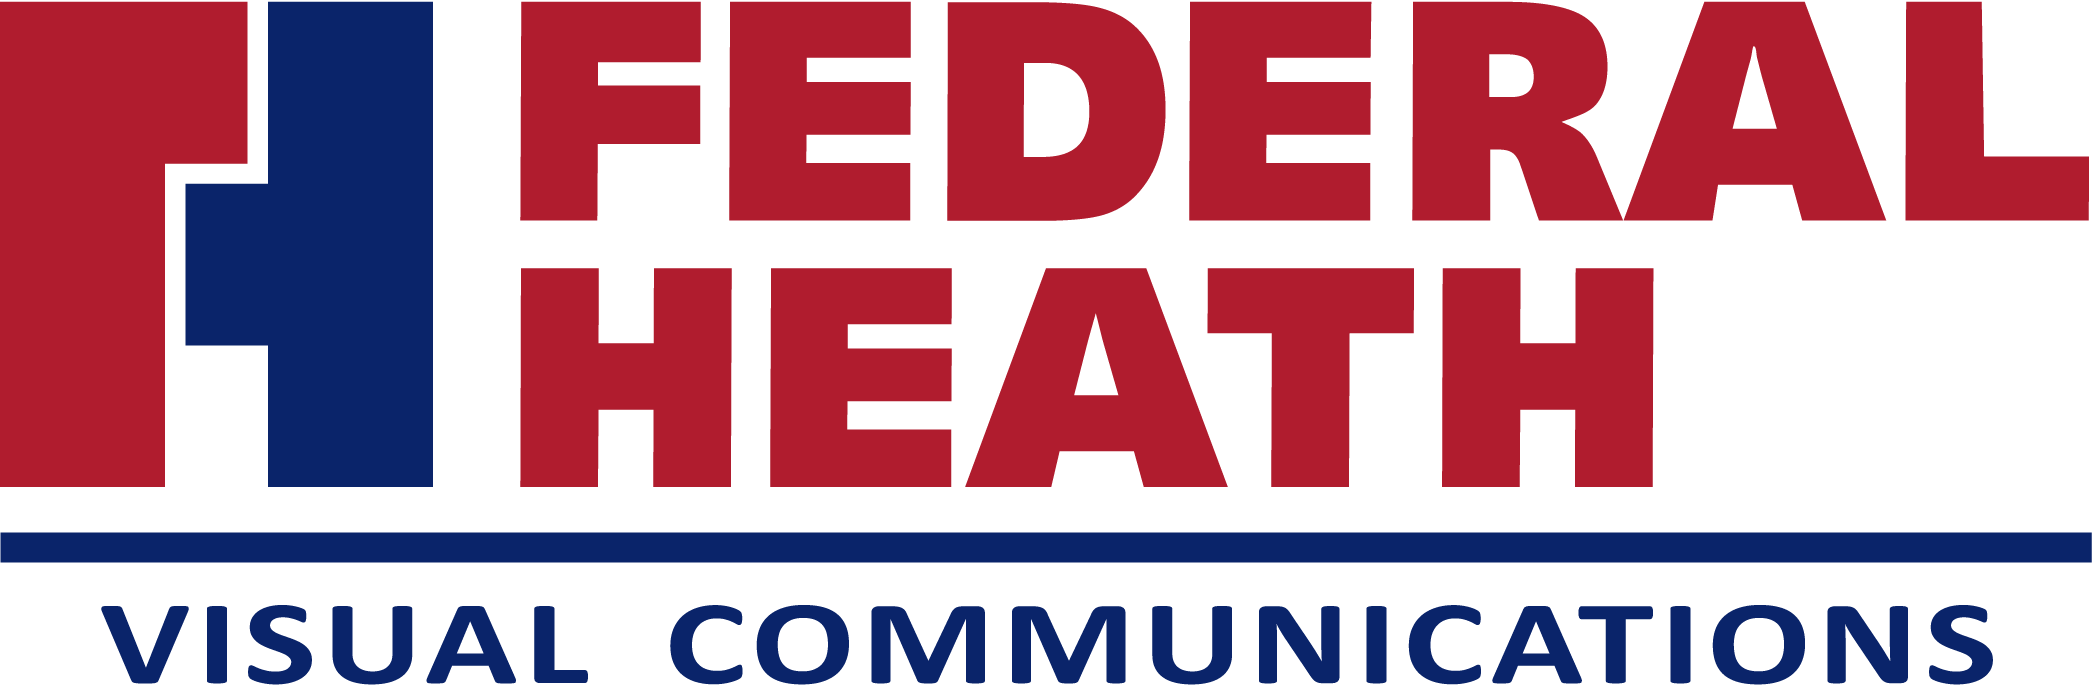 Federal Heath Sign